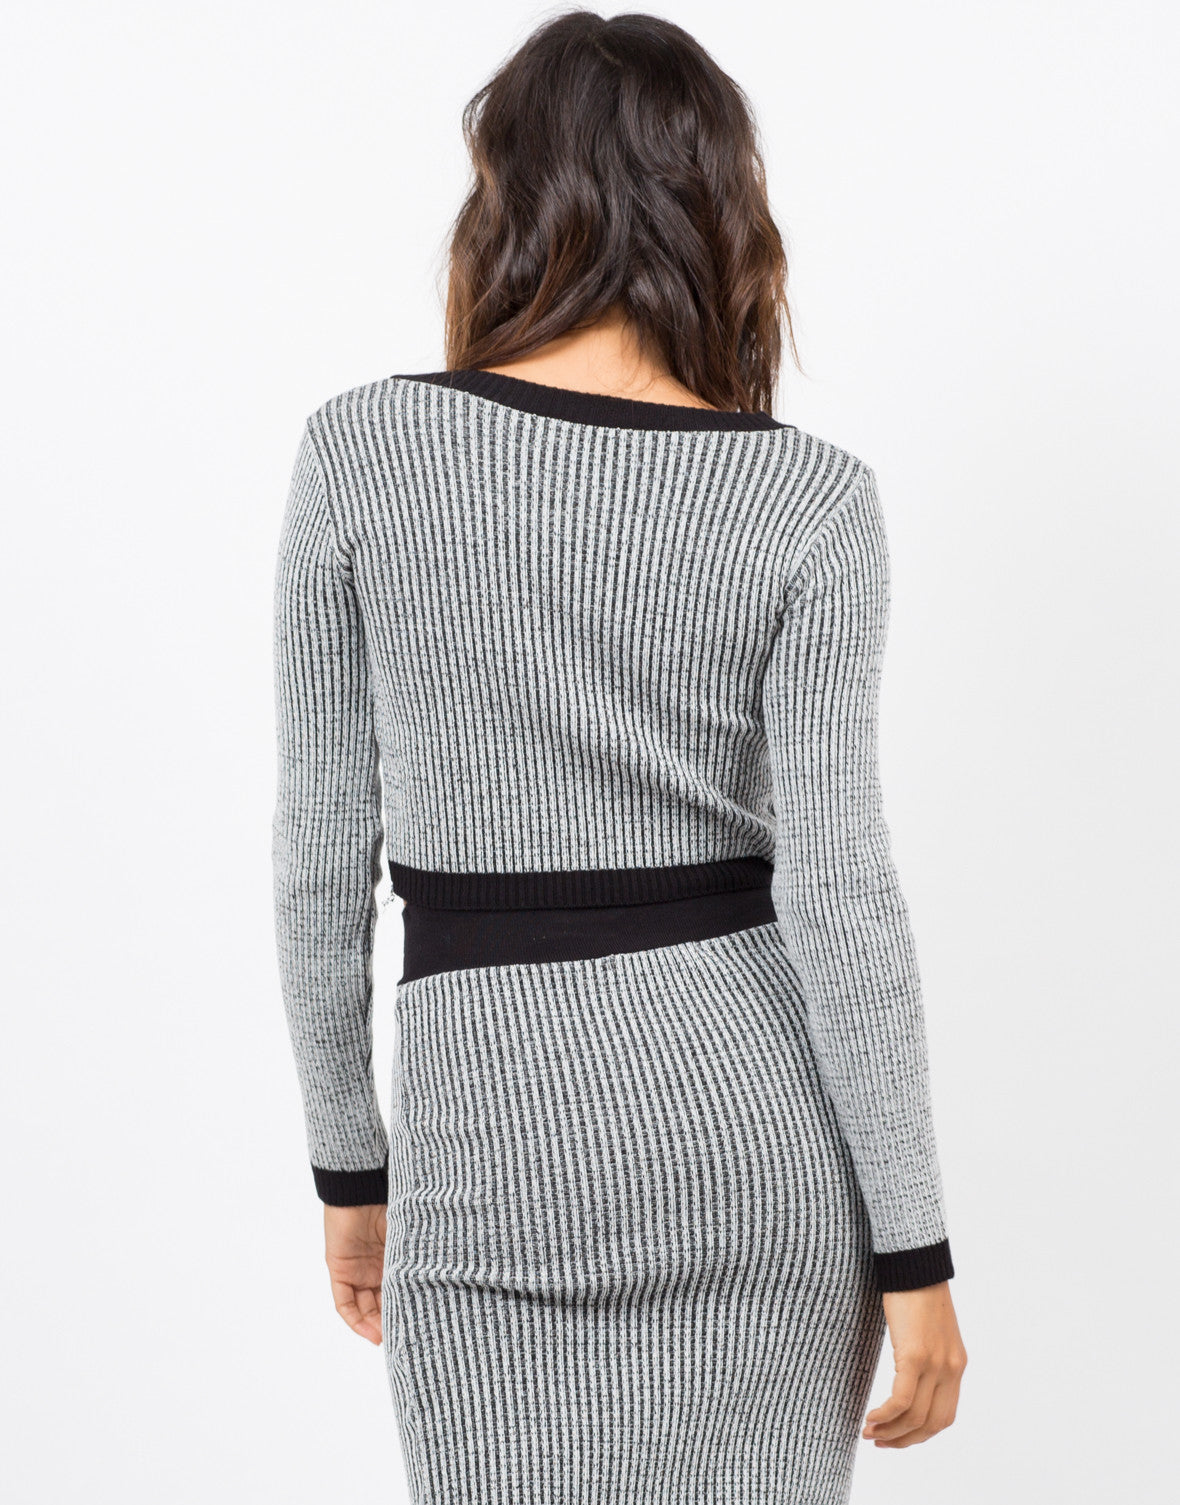 Back View of Marled Knit Crop Top